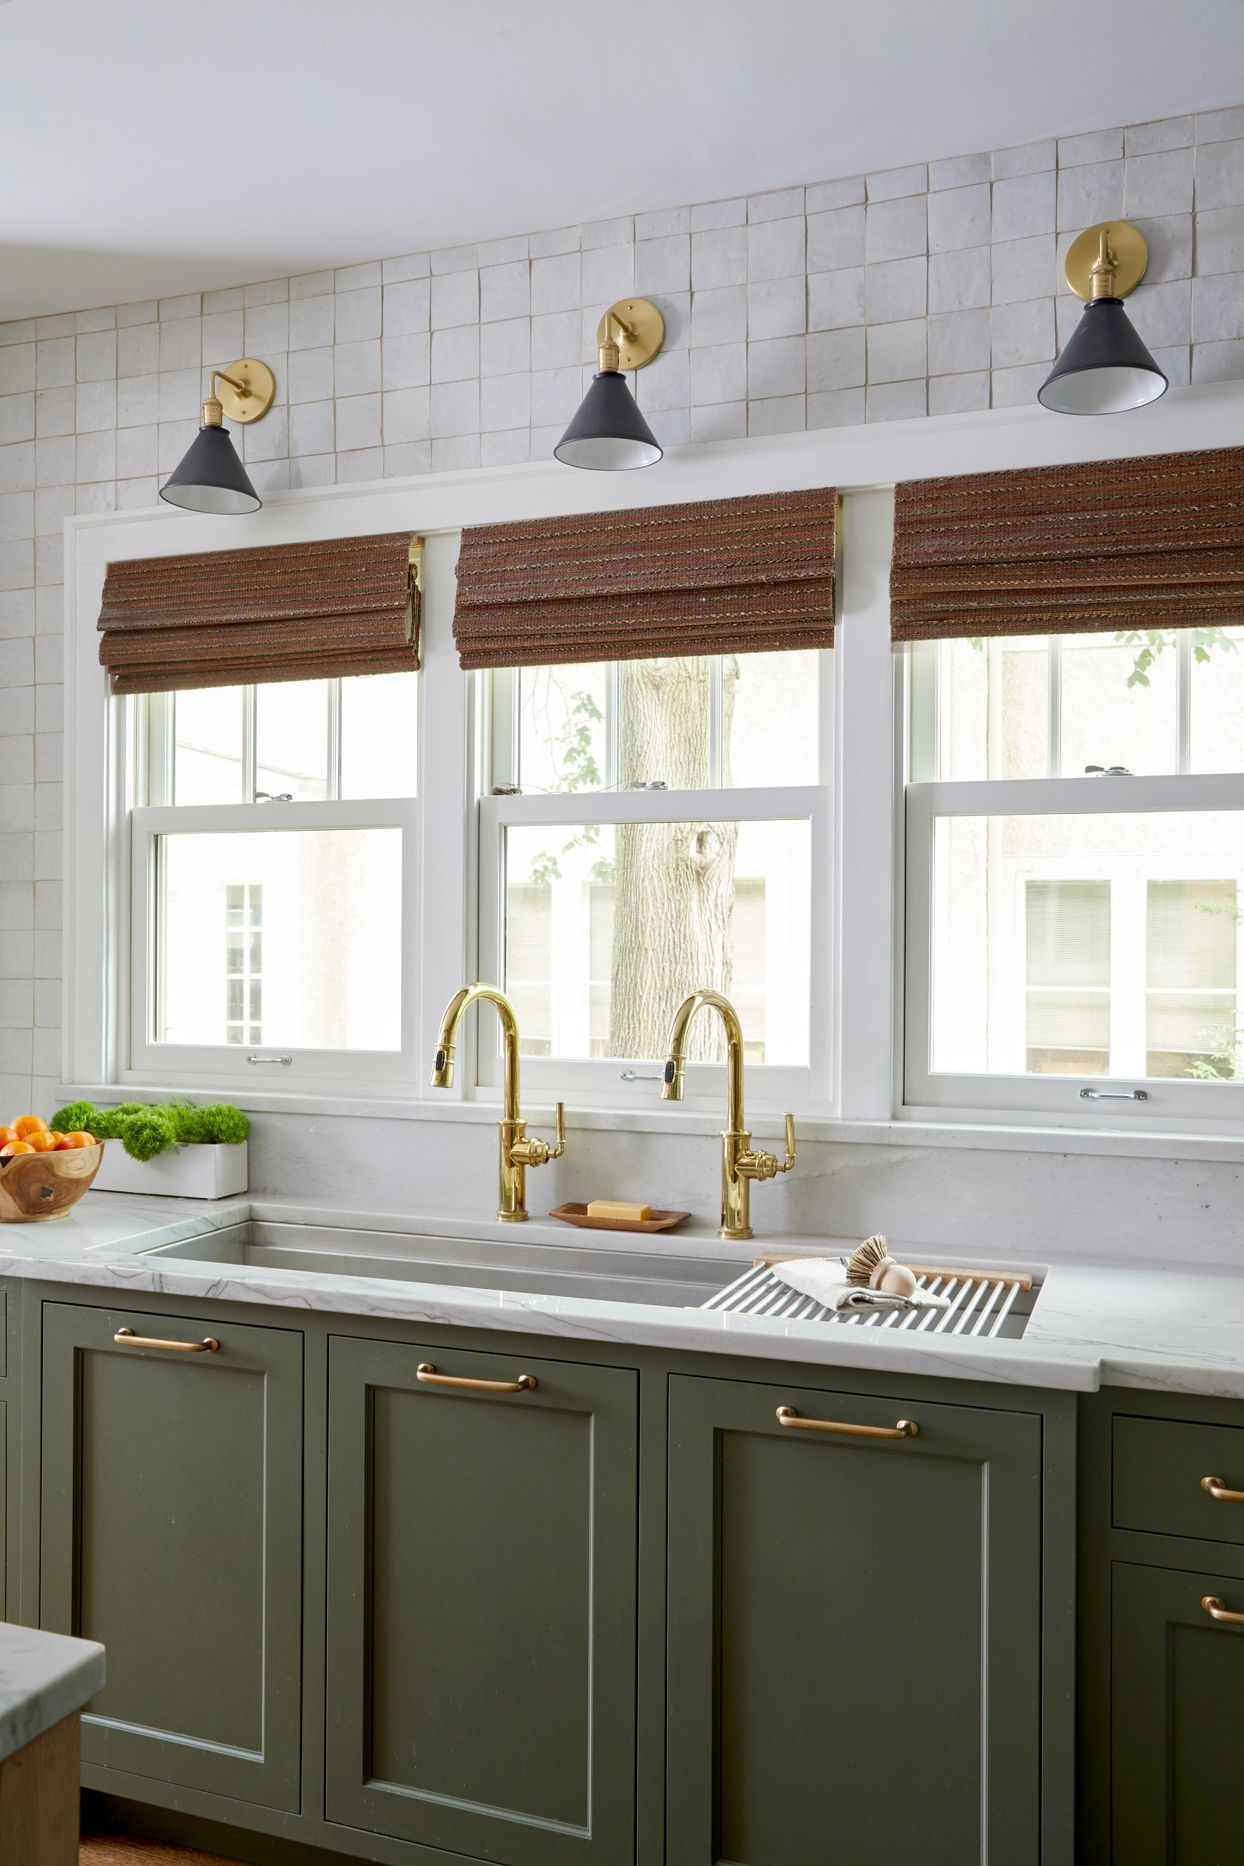 11 Best Green Paint Colors For Cabinetry According To Experts Dark Green Kitchen Green Kitchen Cabinets Kitchen Cabinet Colors